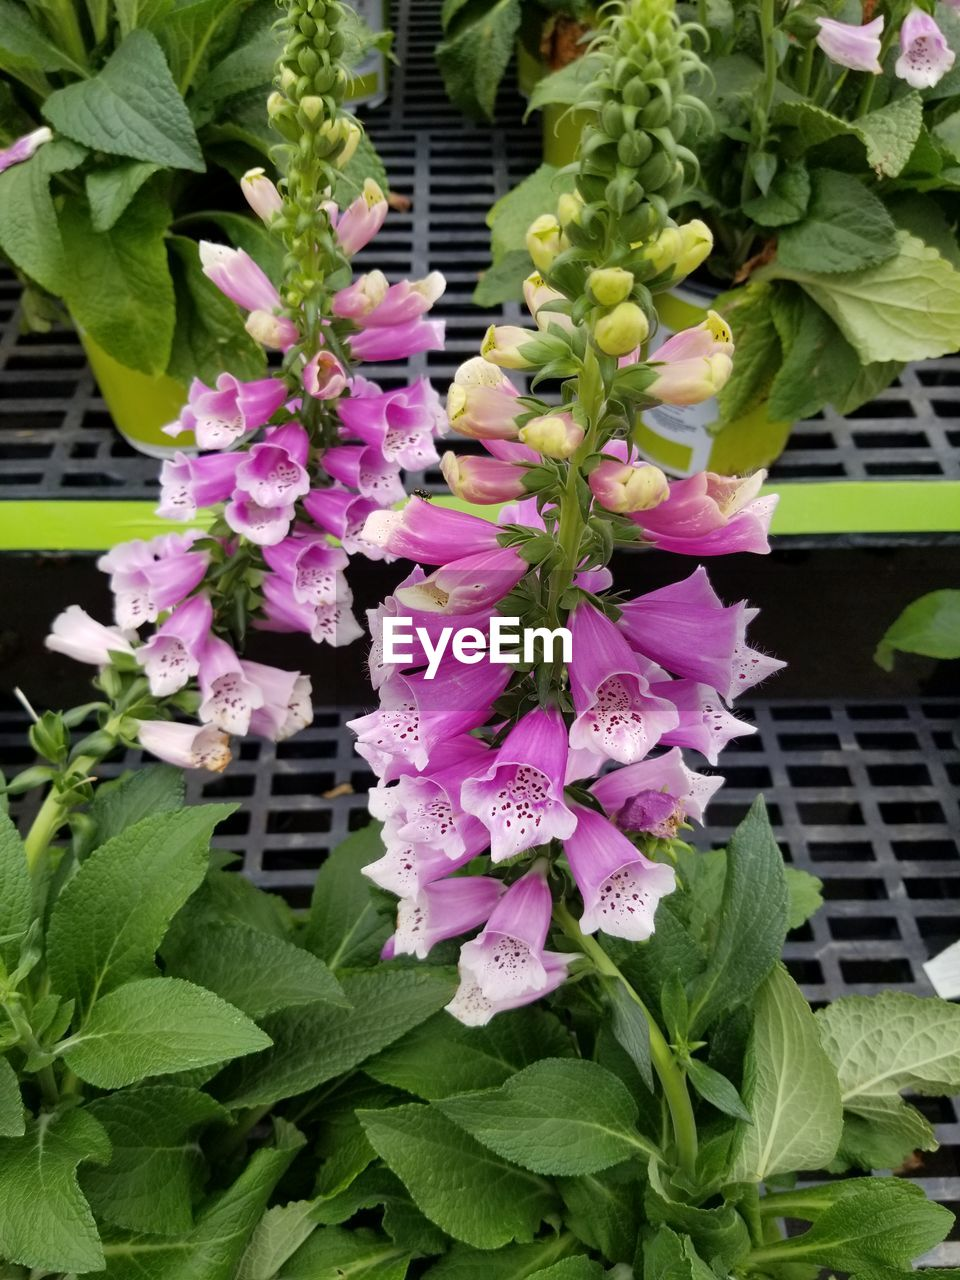 plant, plant part, leaf, flower, flowering plant, freshness, beauty in nature, growth, close-up, vulnerability, pink color, fragility, nature, green color, no people, day, flower head, inflorescence, petal, purple, outdoors, flower arrangement